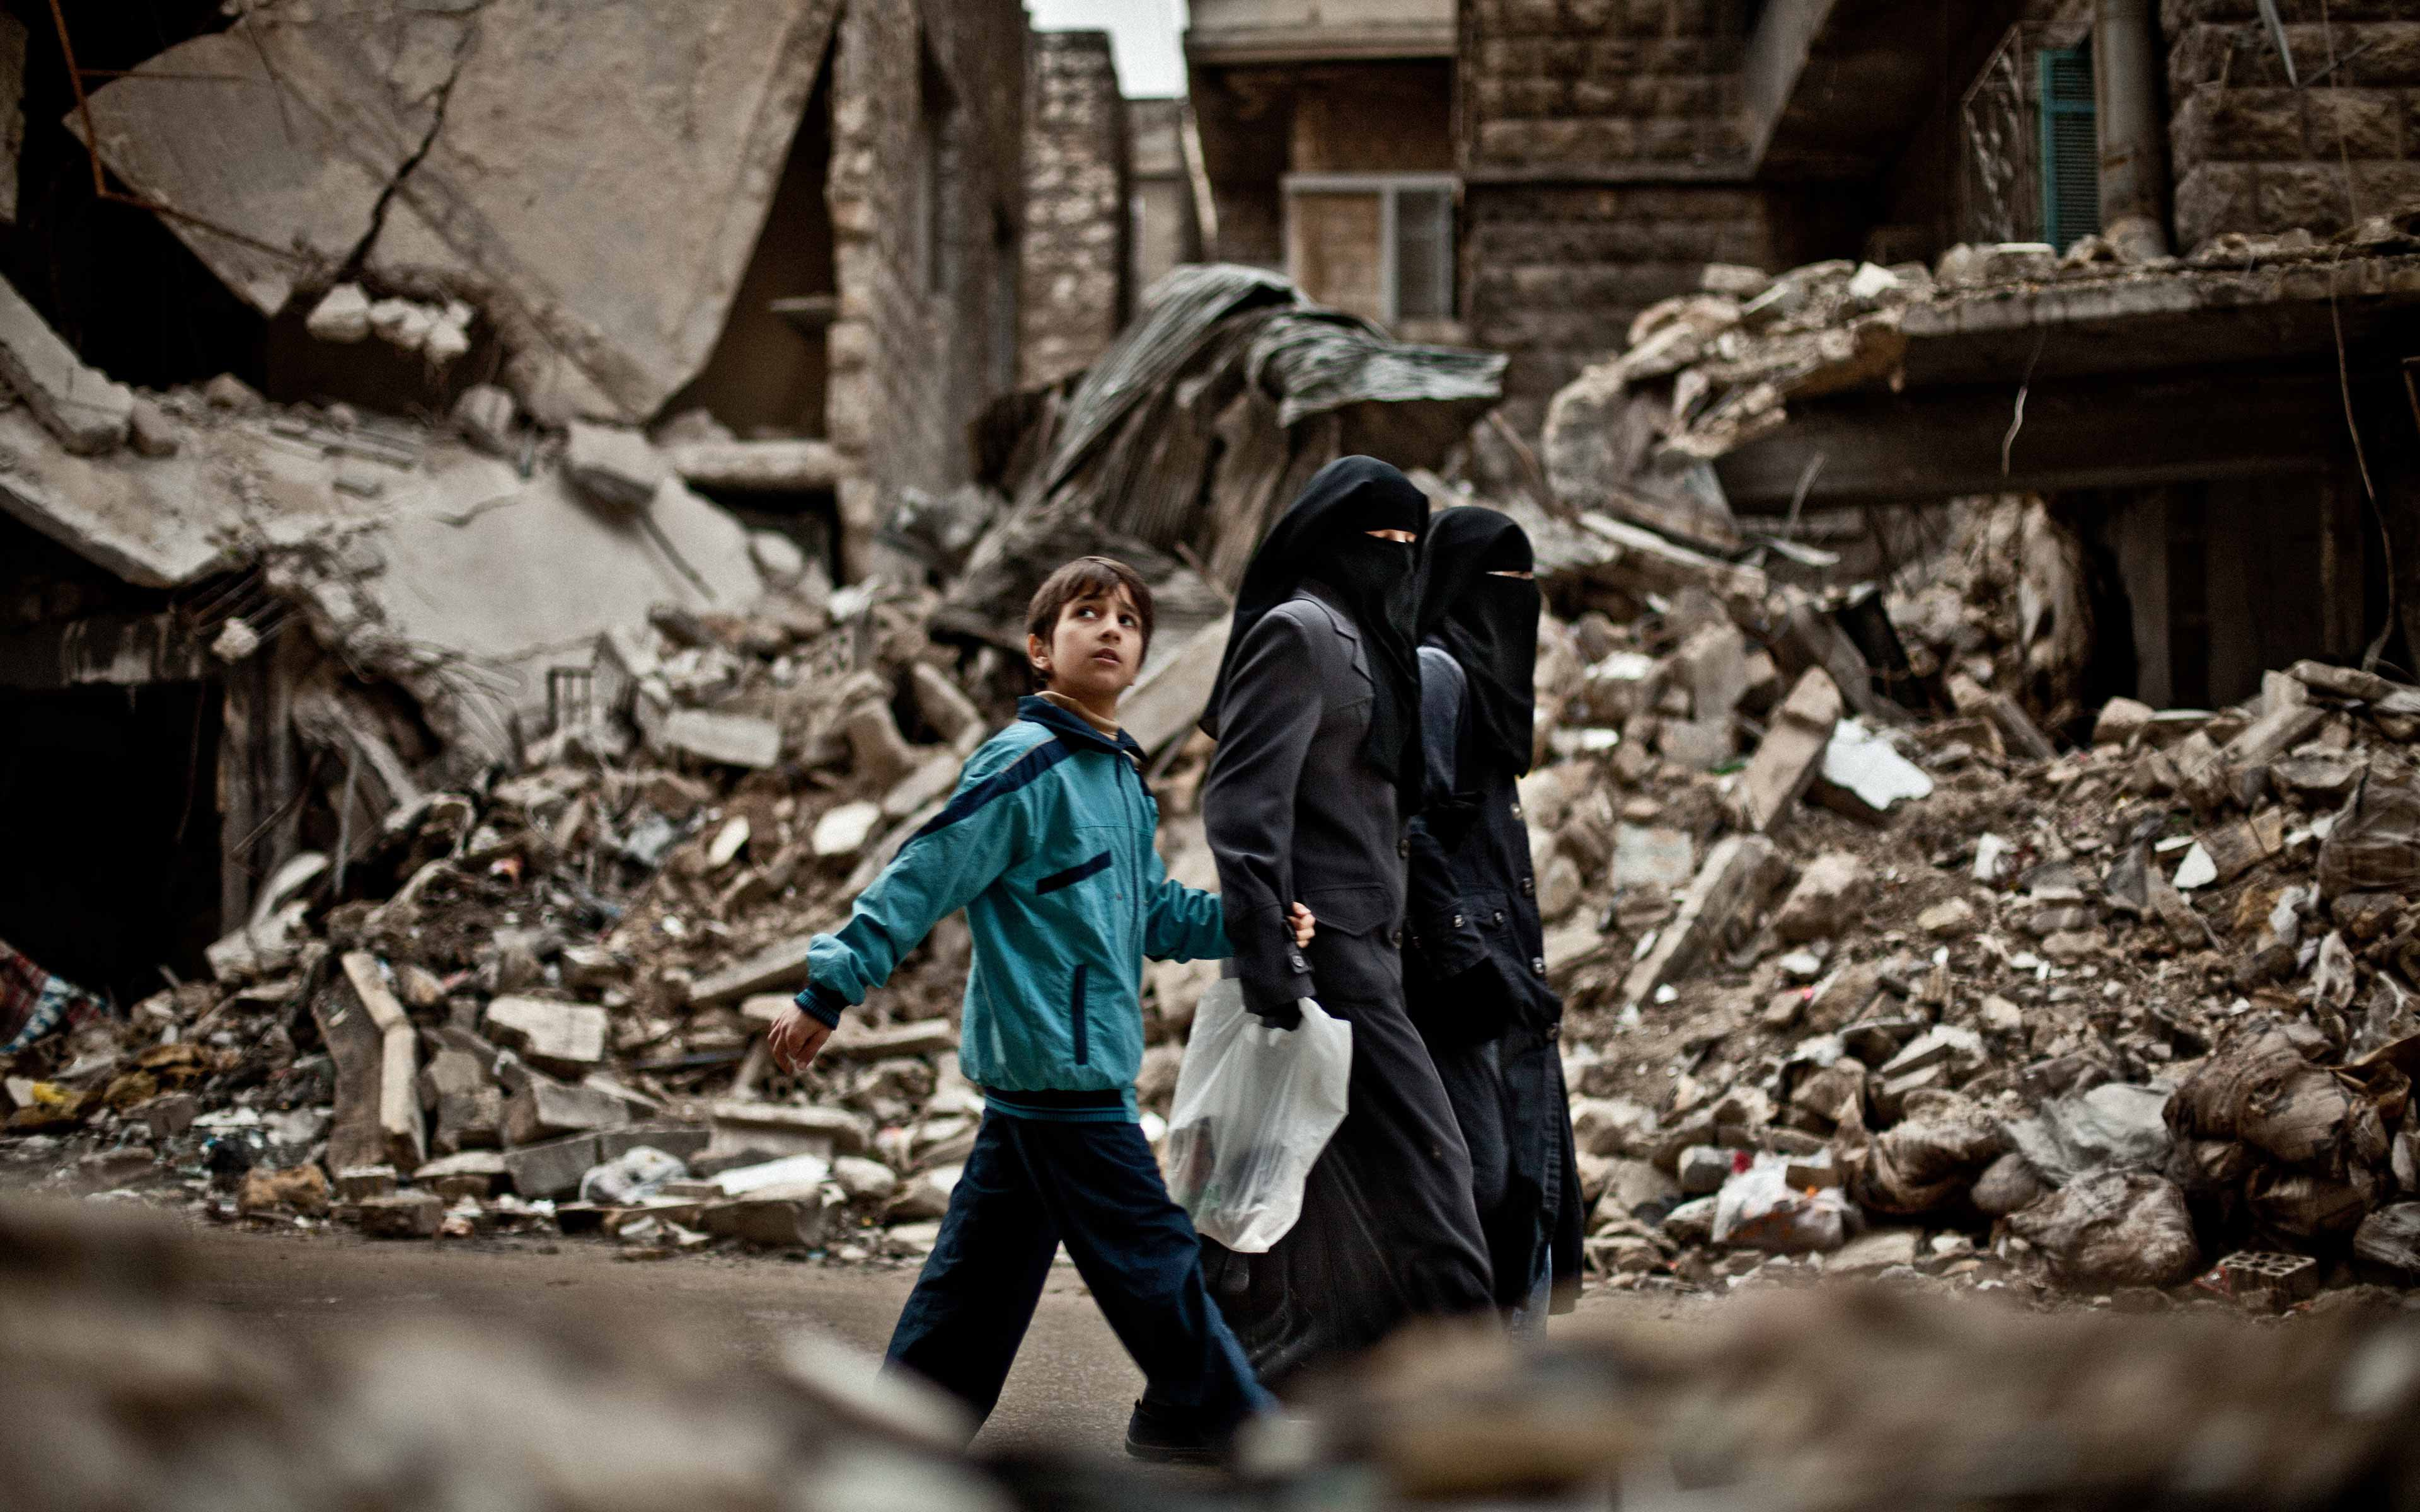 When Pablo Tosco, an independent photographer at the time, first saw this boy in Aleppo, Syria, in February 2013, he thought it was a sign of hope: a child looking skyward. Only later did he realize that the boy's glance upward was a cautionary one. The day was cloudy, and therefore somewhat safe for people to be out knowing that poor visibility meant the air raids would stop.